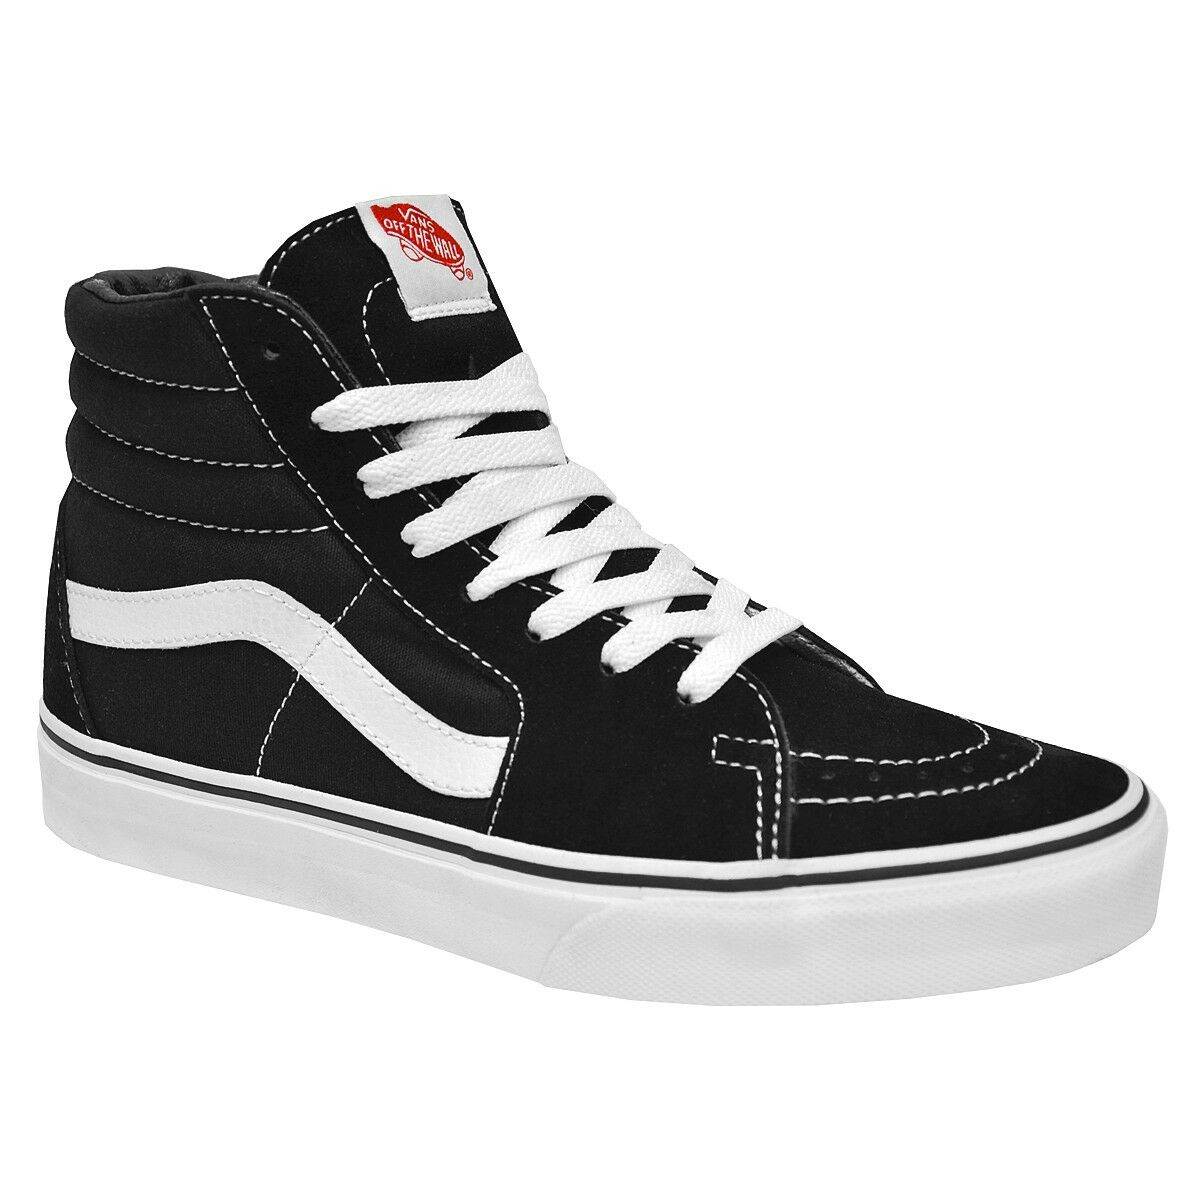 Vans Classic SK8 Hi Top Black White Fashion Mens Womens Shoes Size 4-13